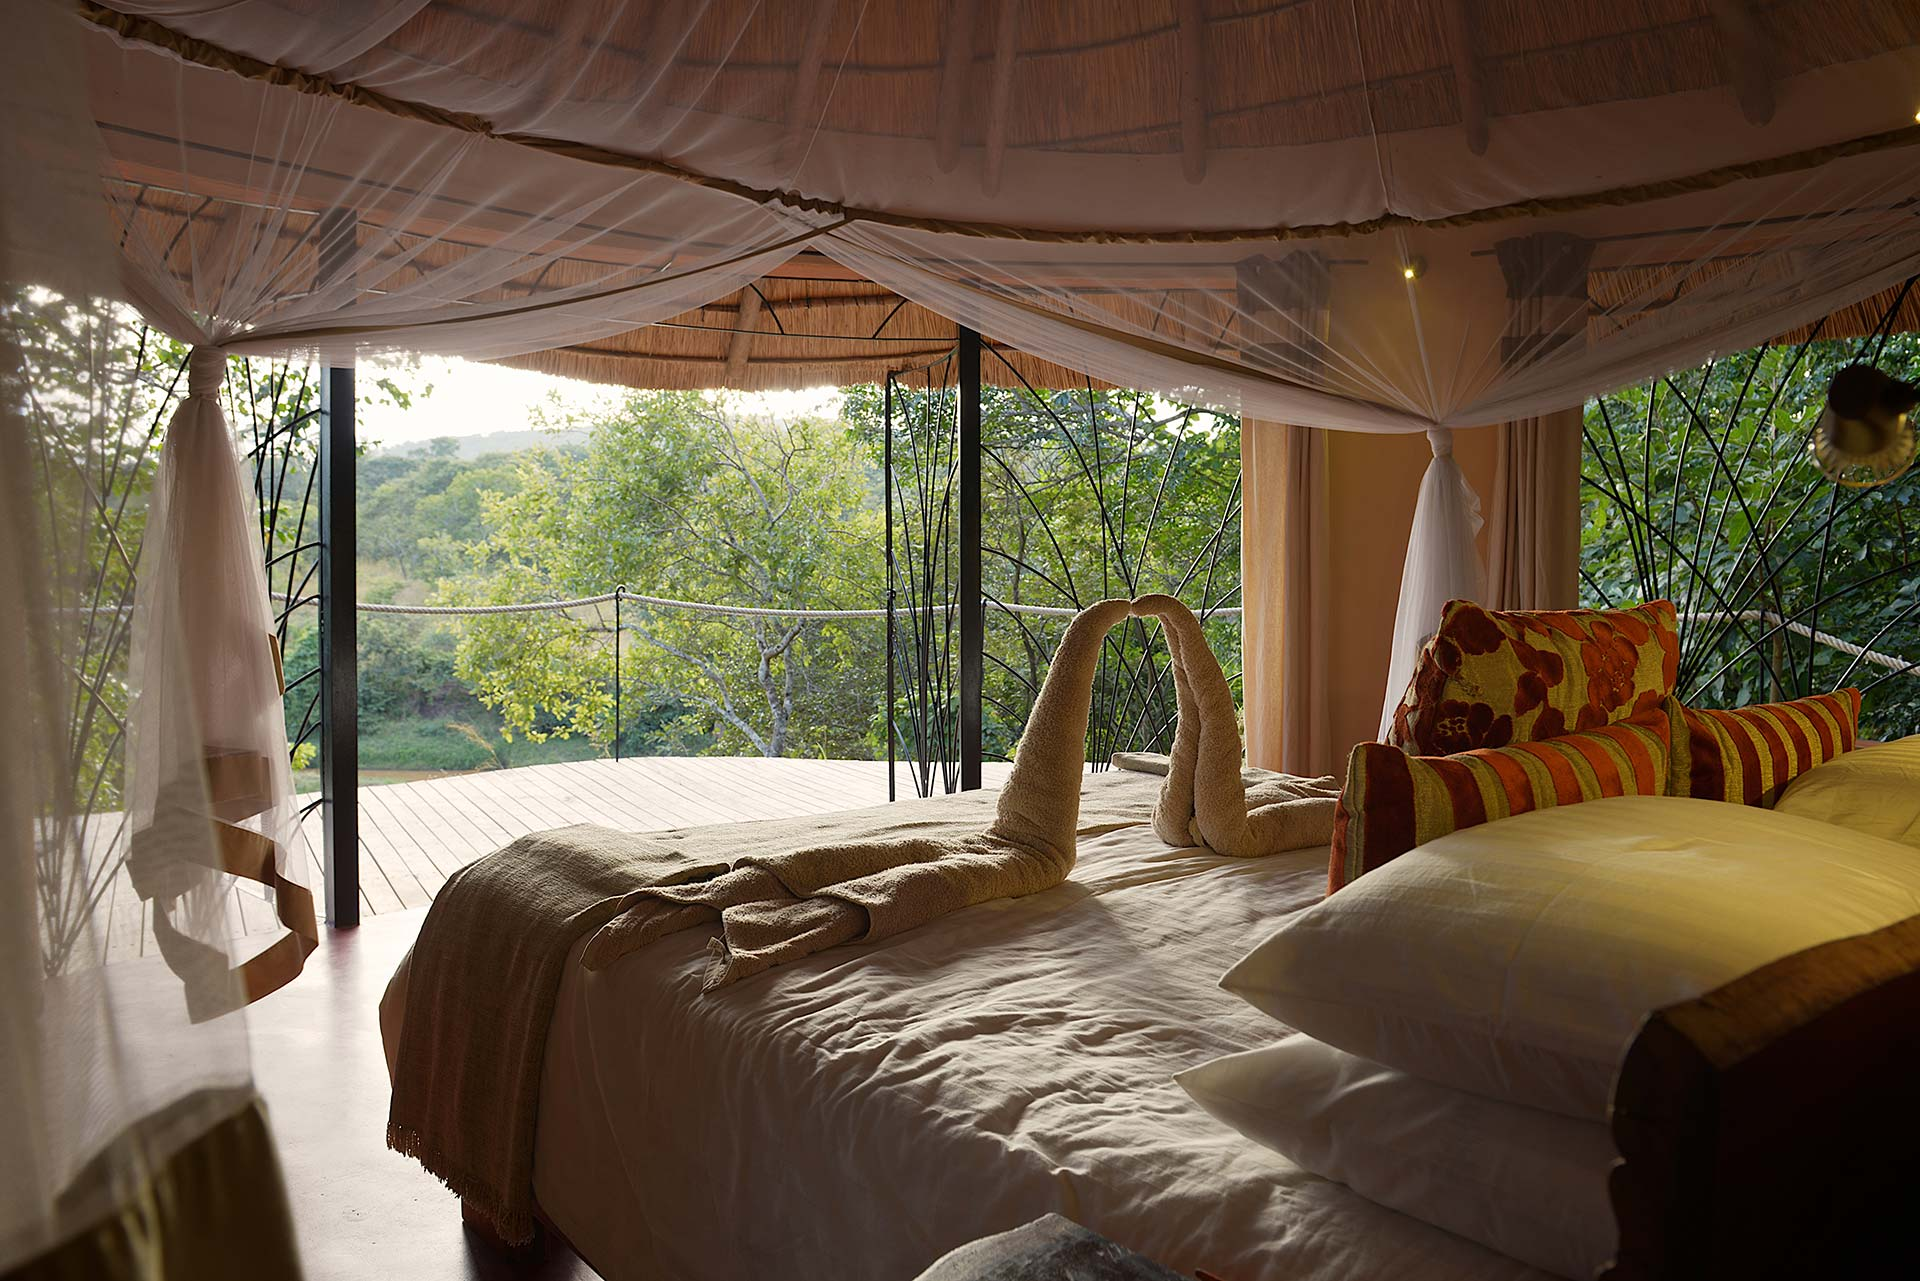 Luxury accommodation Malawi